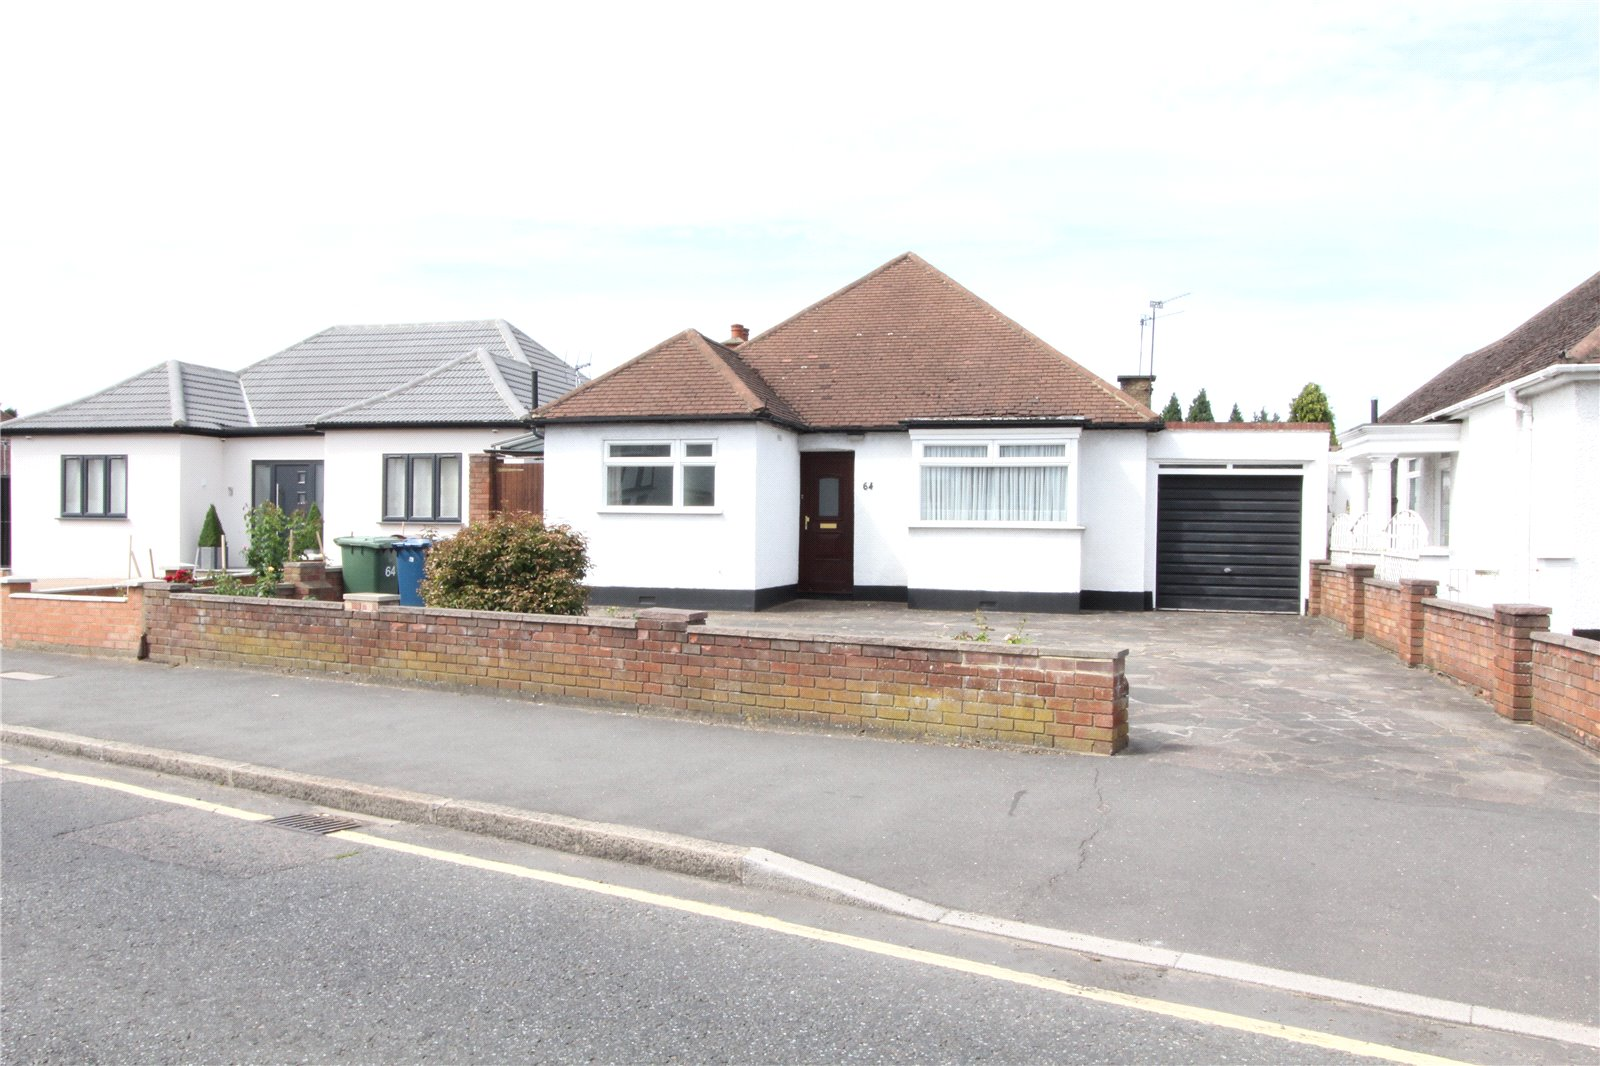 2 Bedrooms Bungalow for sale in Village Way Pinner HA5